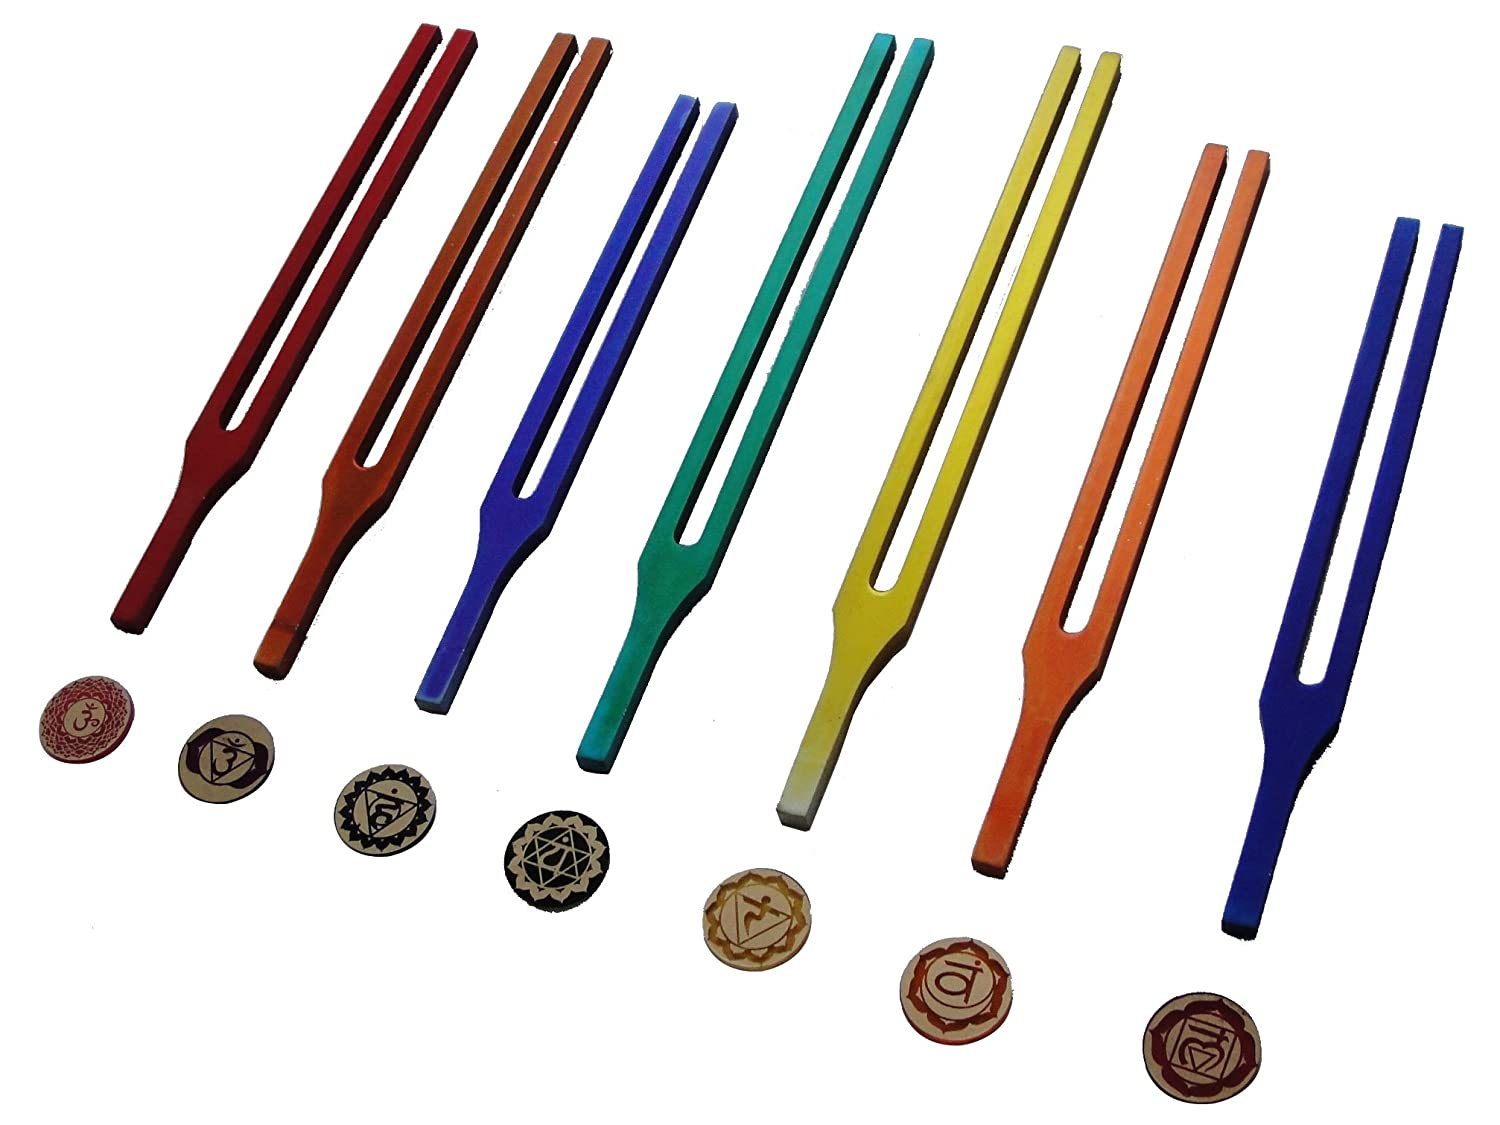 Chakra Tuning Fork Fork Tuning With Colour Therapy Therapy B015J72KN8, アヤカミチョウ:77eb4342 --- verkokajak.se